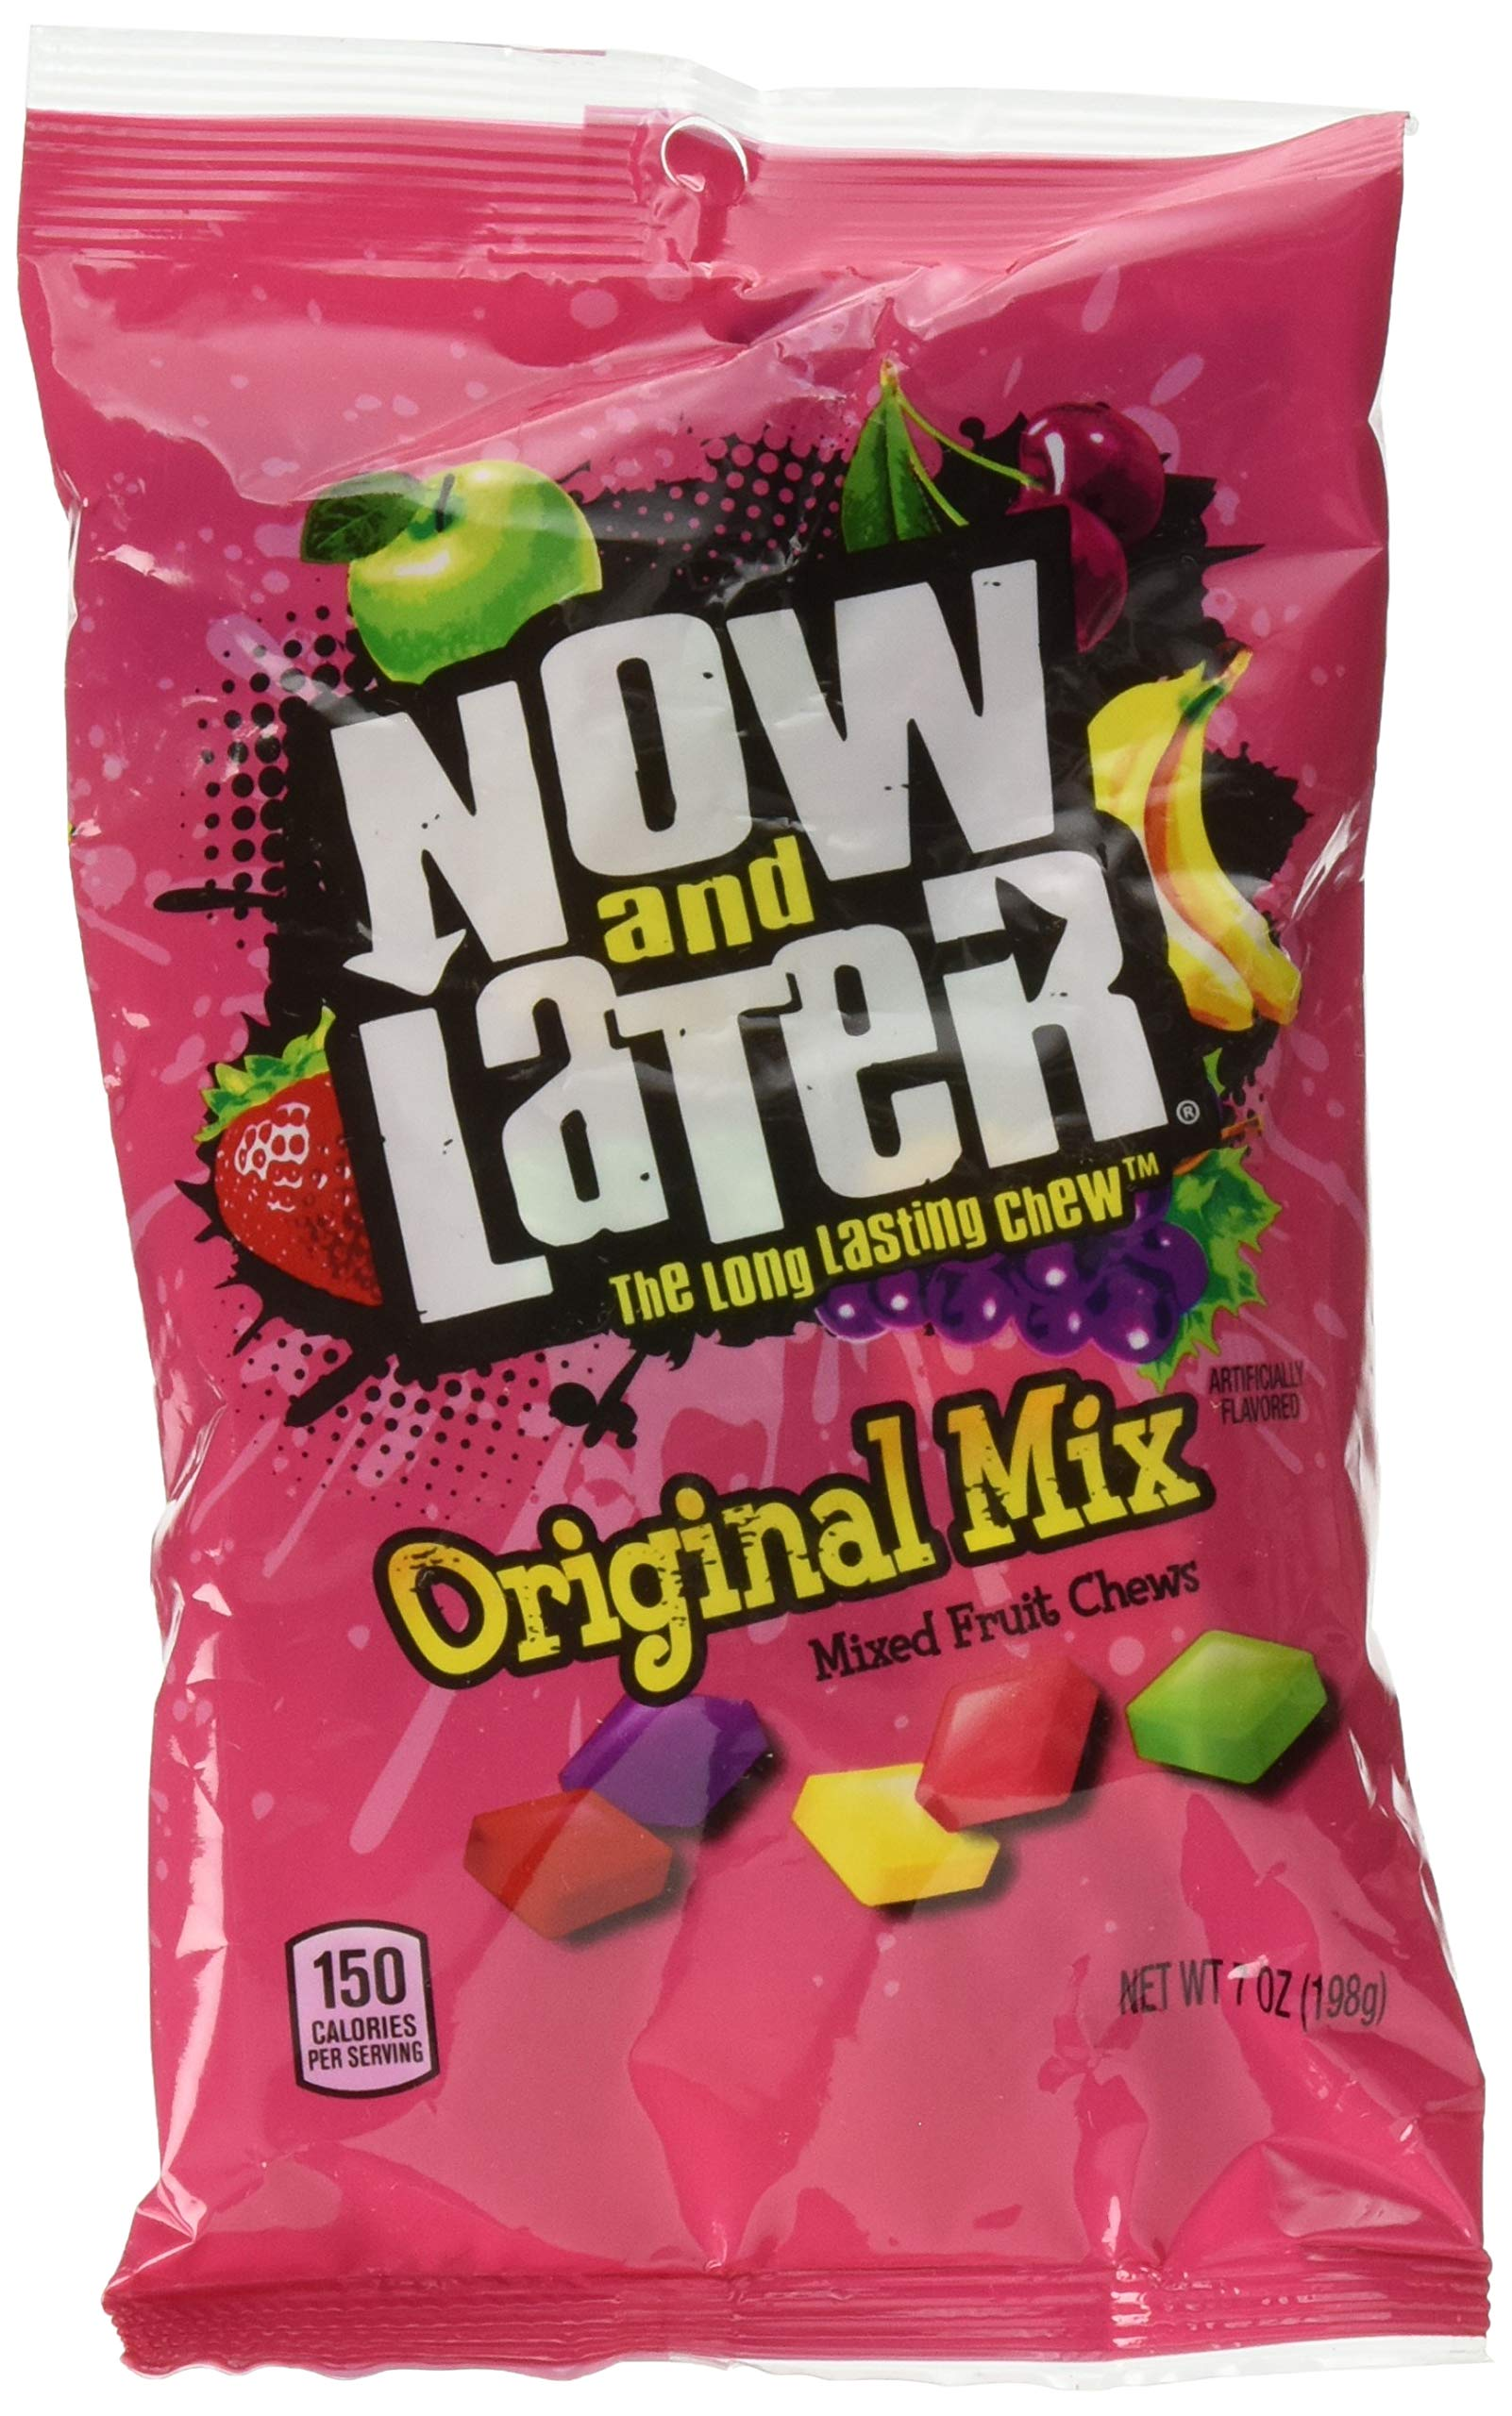 Now & Later Original Taffy Chews Candy, Mixed Fruit, 7 Ounce (Pack of 12)